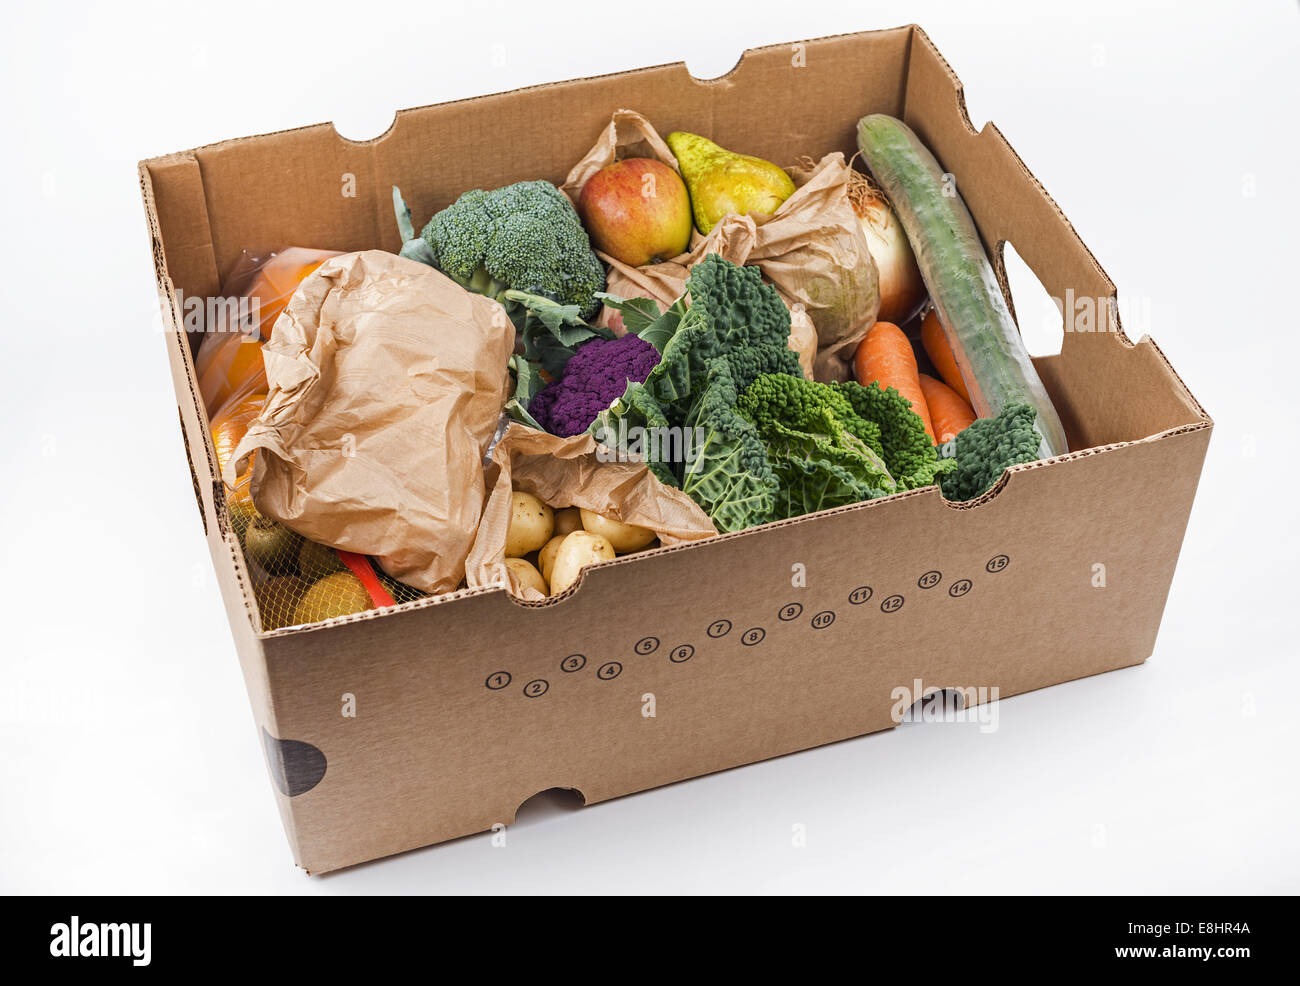 Delivered to the door 5-a-day-box mixed fruit and veg box - Stock Image